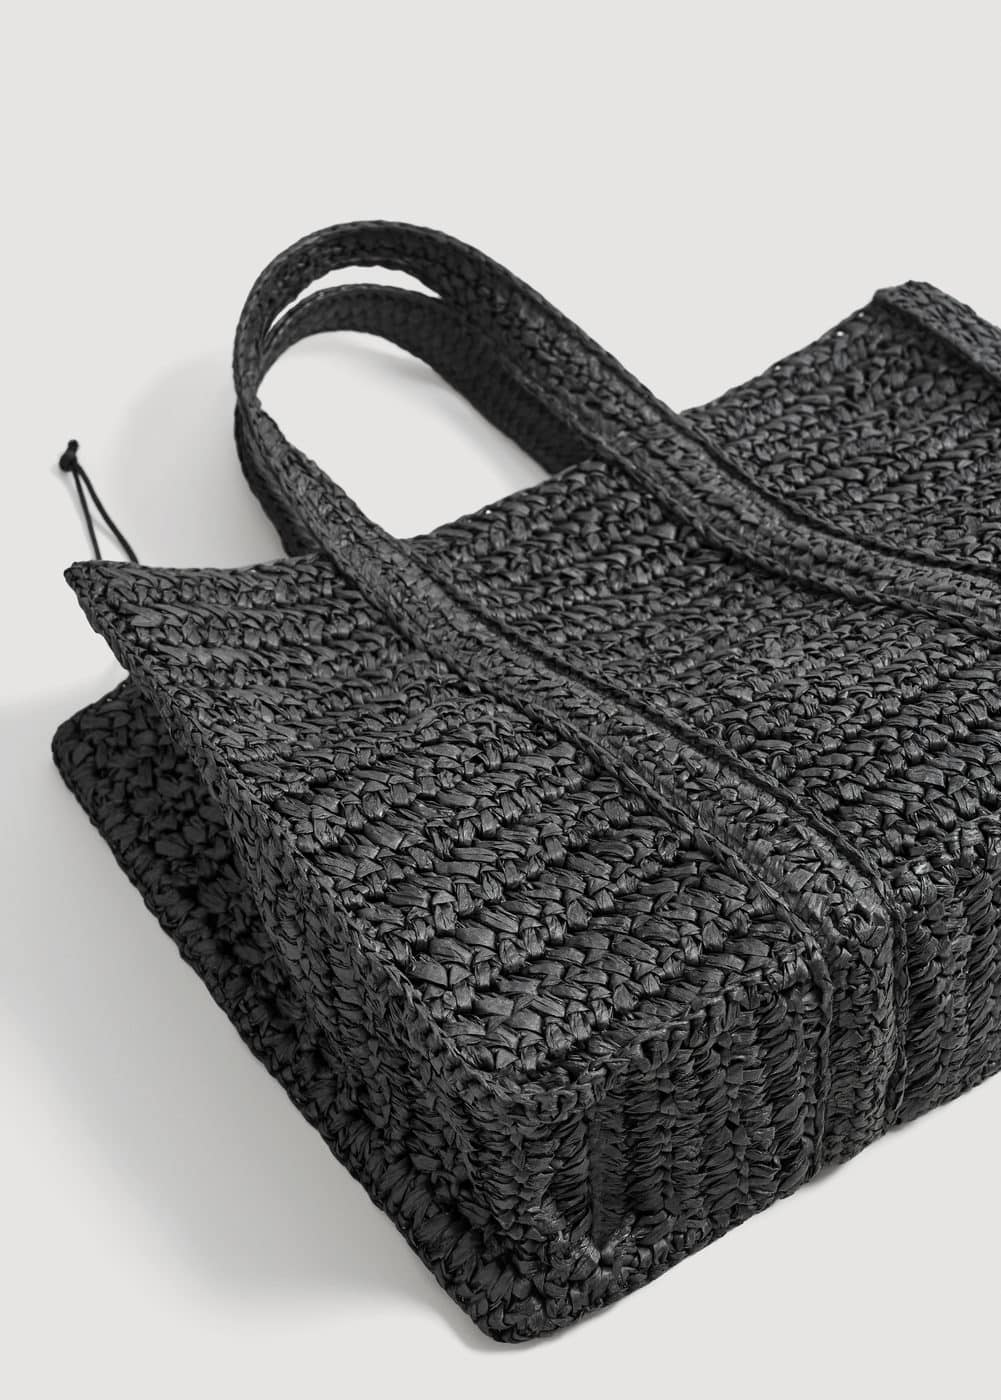 Torba Shopper Pleciona by Mango